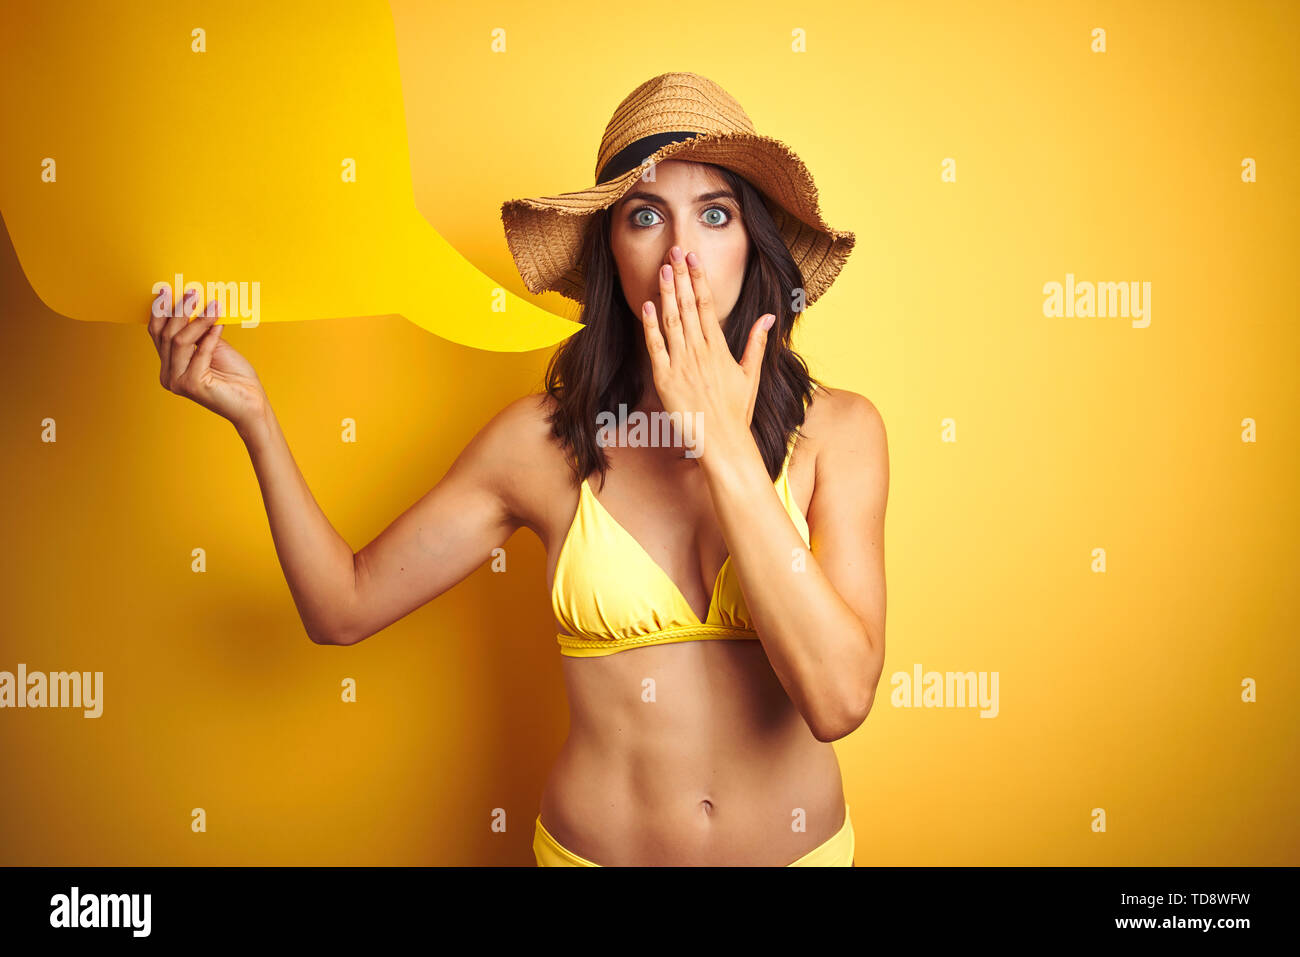 Beautiful woman wearing yellow bikini and holding talking balloon over isolated yellow background cover mouth with hand shocked with shame for mistake - Stock Image